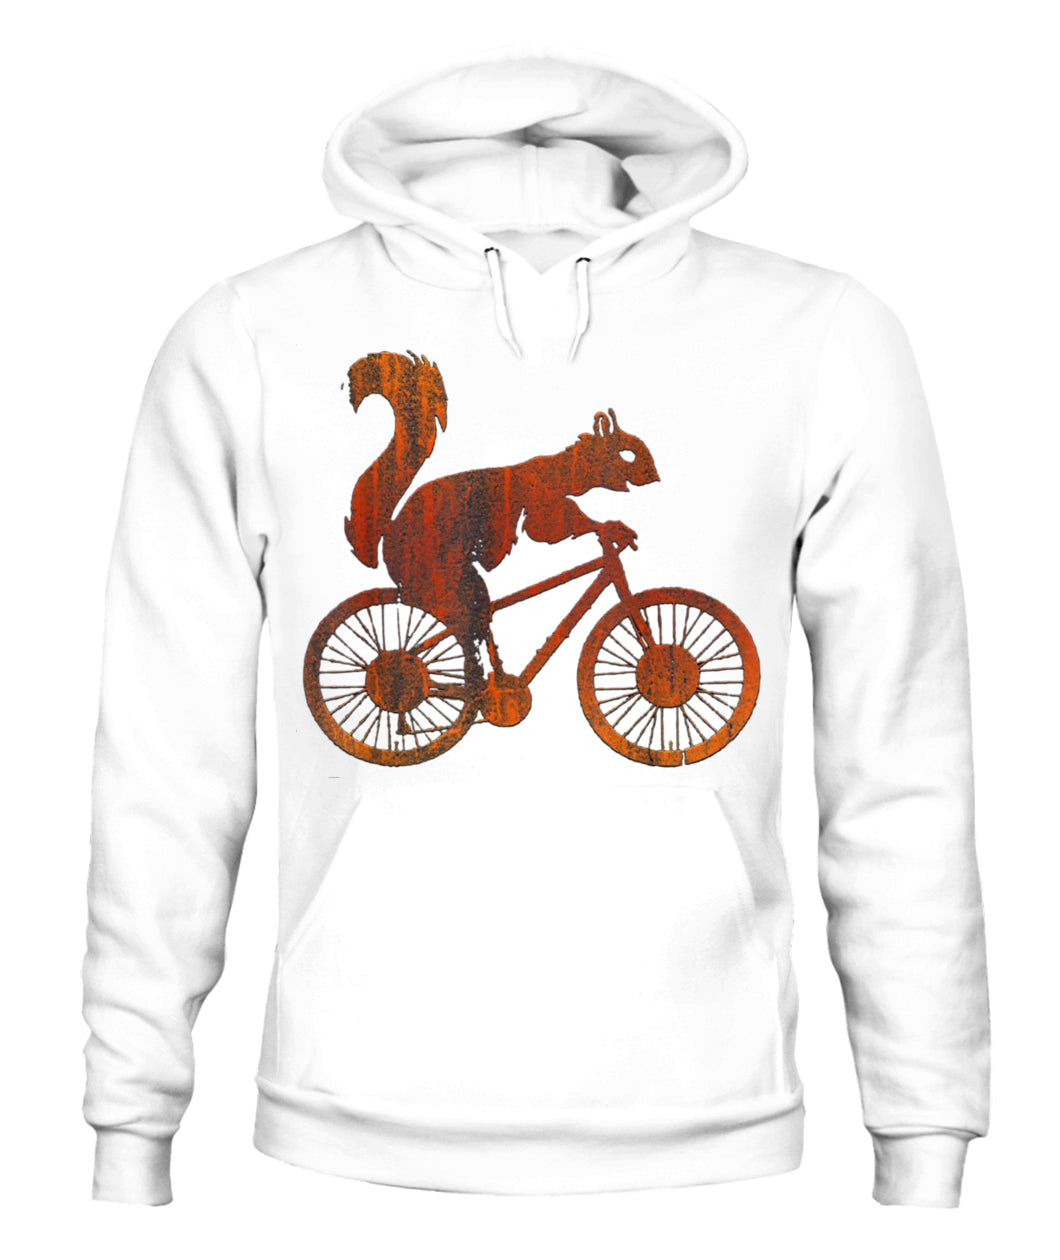 Squirrel Riding A Bicycle Vintage Bike Squirrel T- - Unisex Hoodies